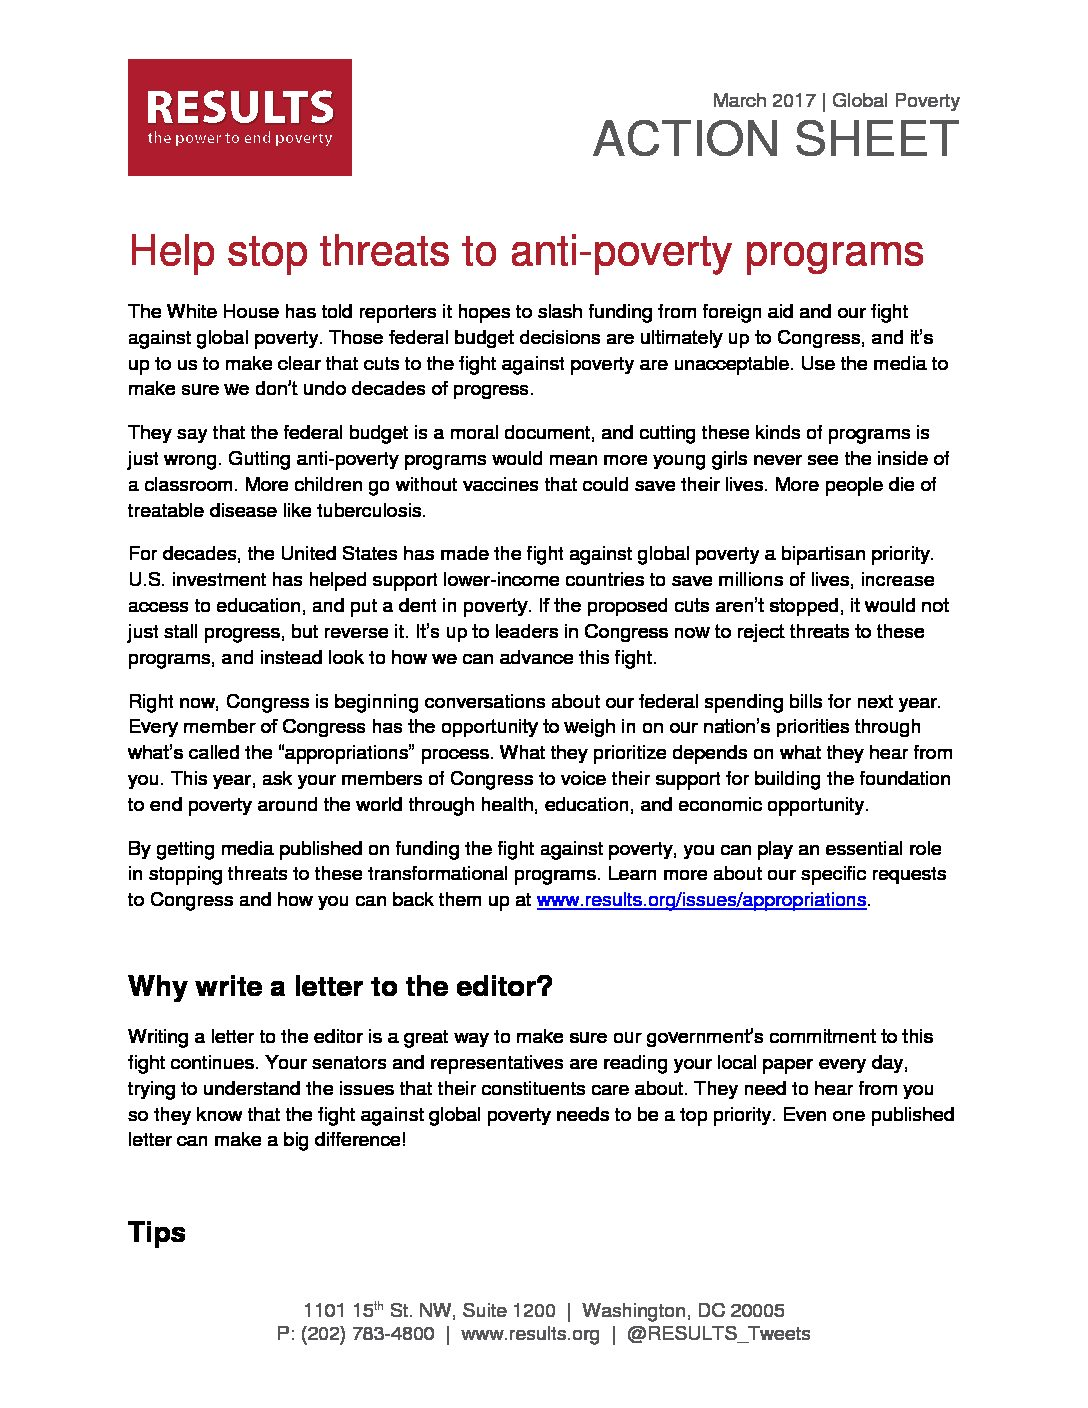 Global Action Sheet March 2017 Protect The Fight Against Poverty